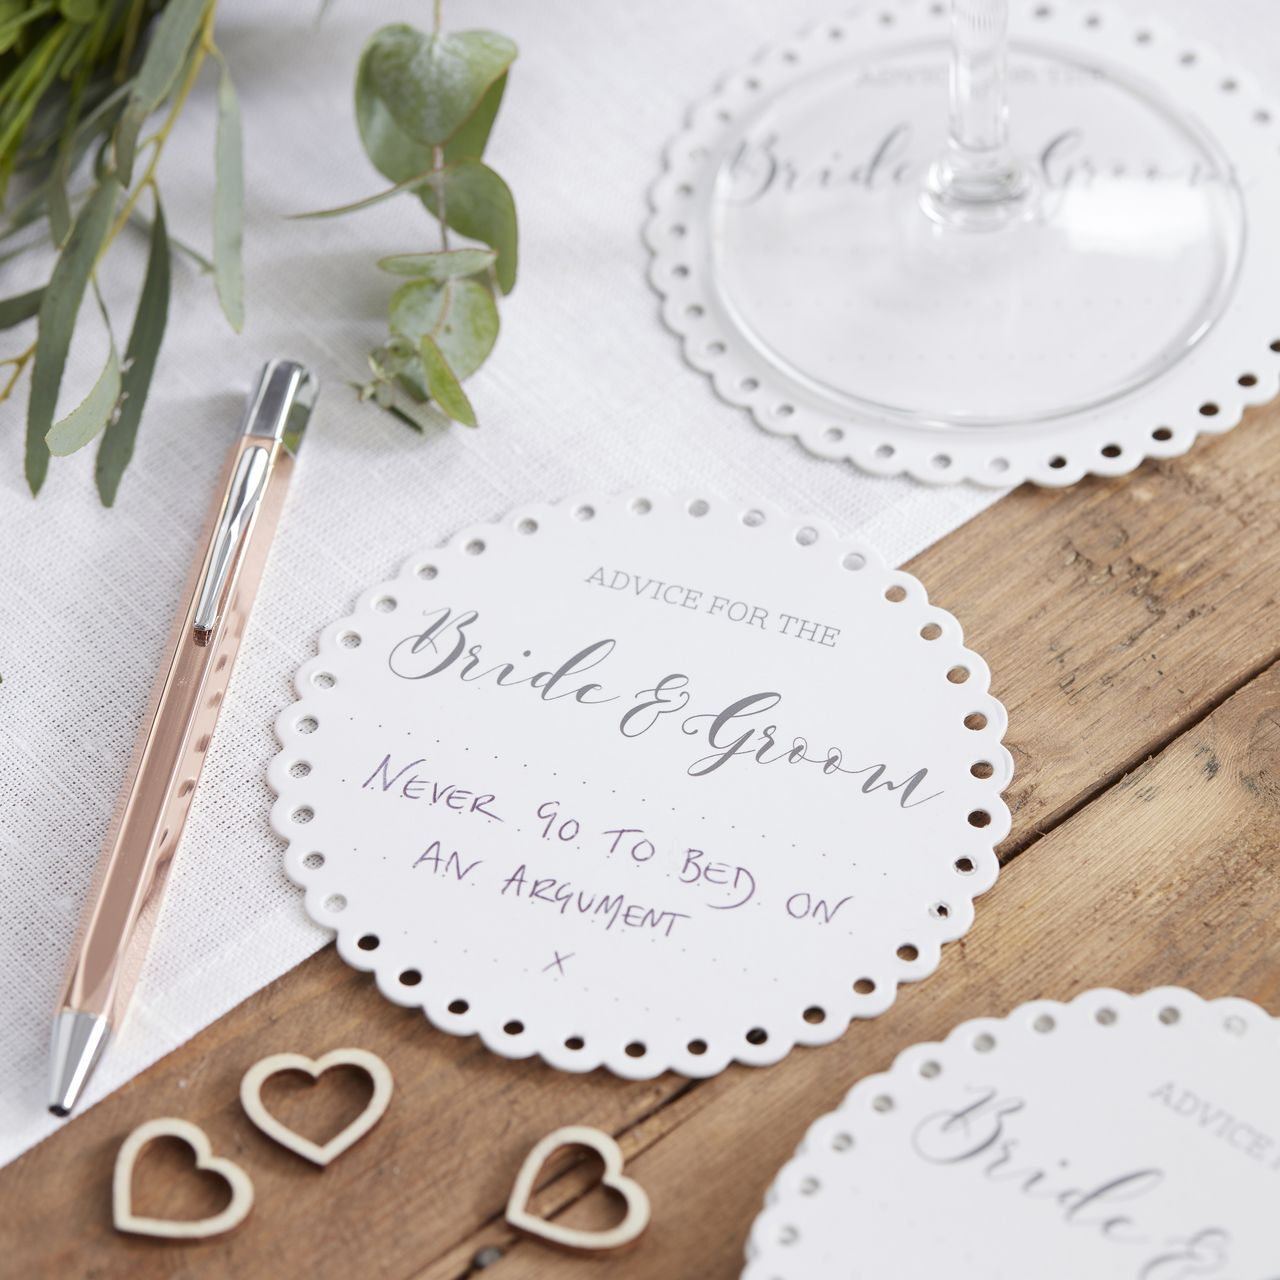 Advice For The Bride & Groom Coasters | Wedding, Party gifts and ...